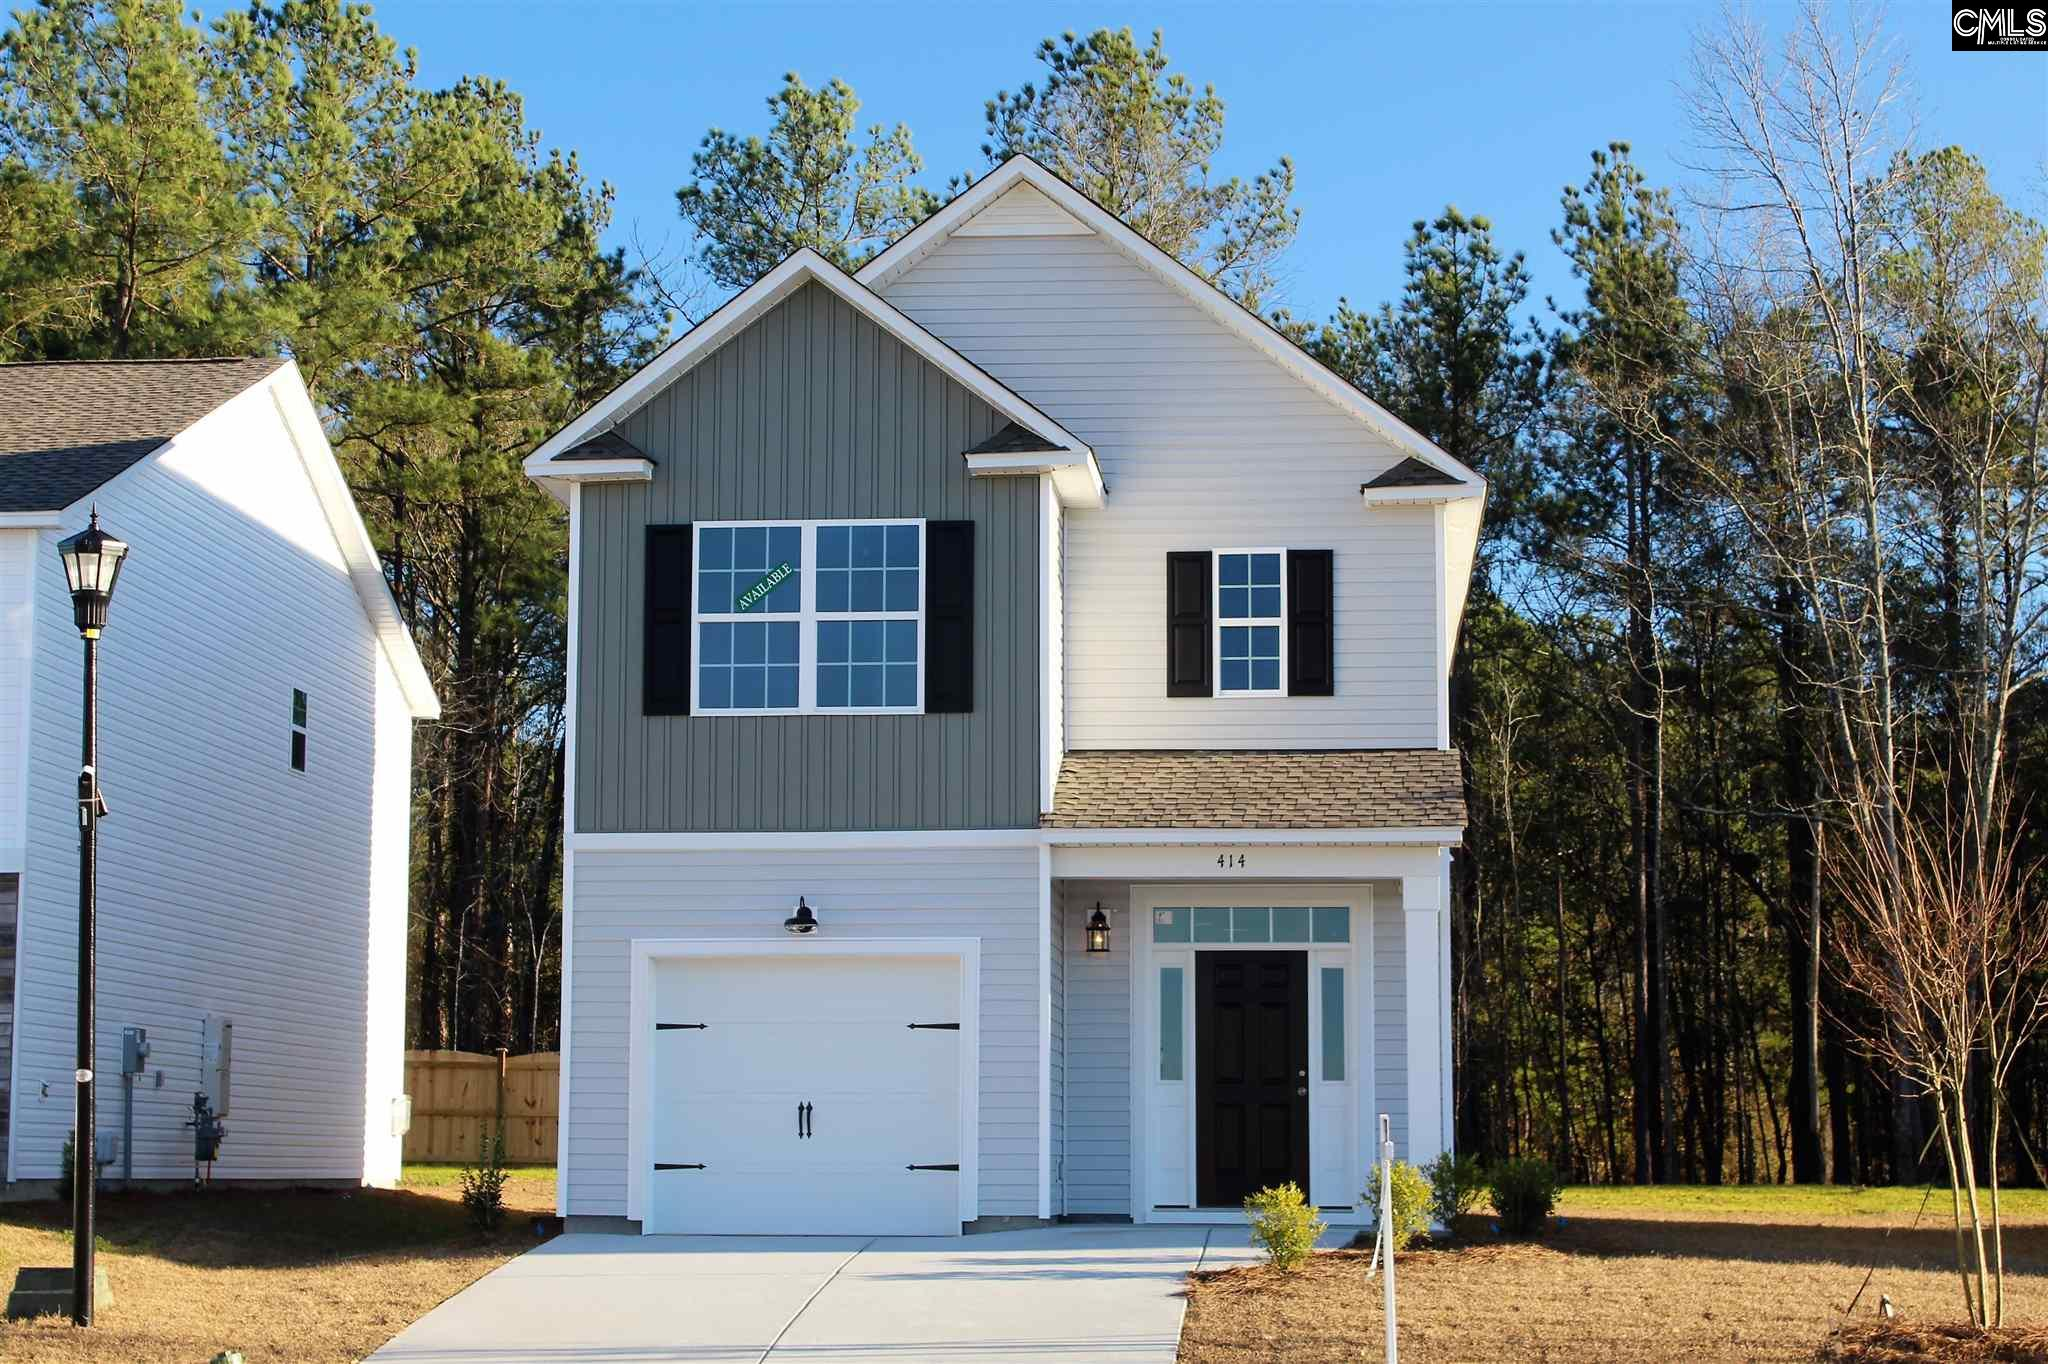 414 Fairford Blythewood, SC 29016